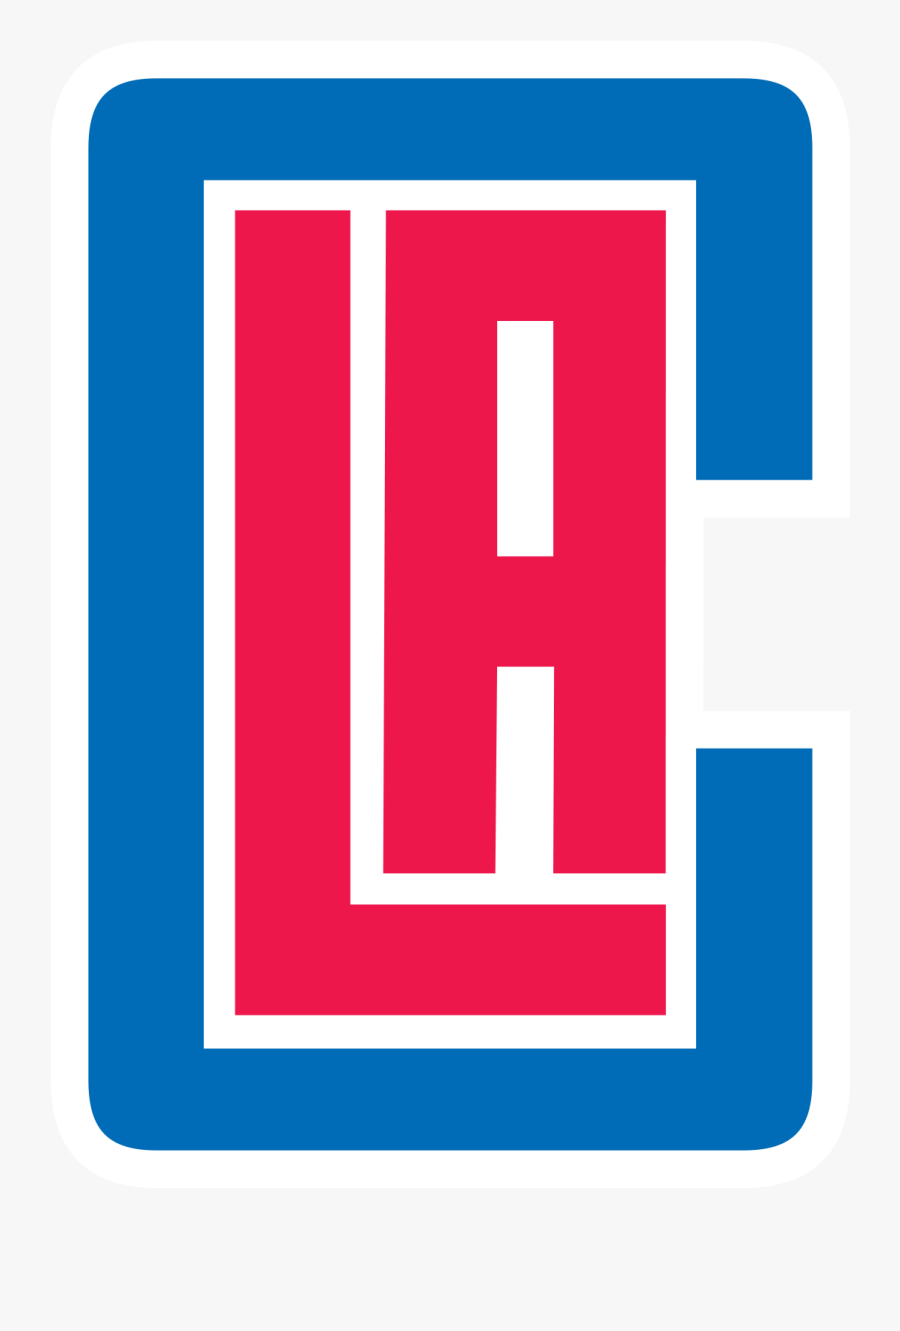 Blank Basketball Scoreboard Clipart Image Transparent - Los Angeles Clippers, Transparent Clipart